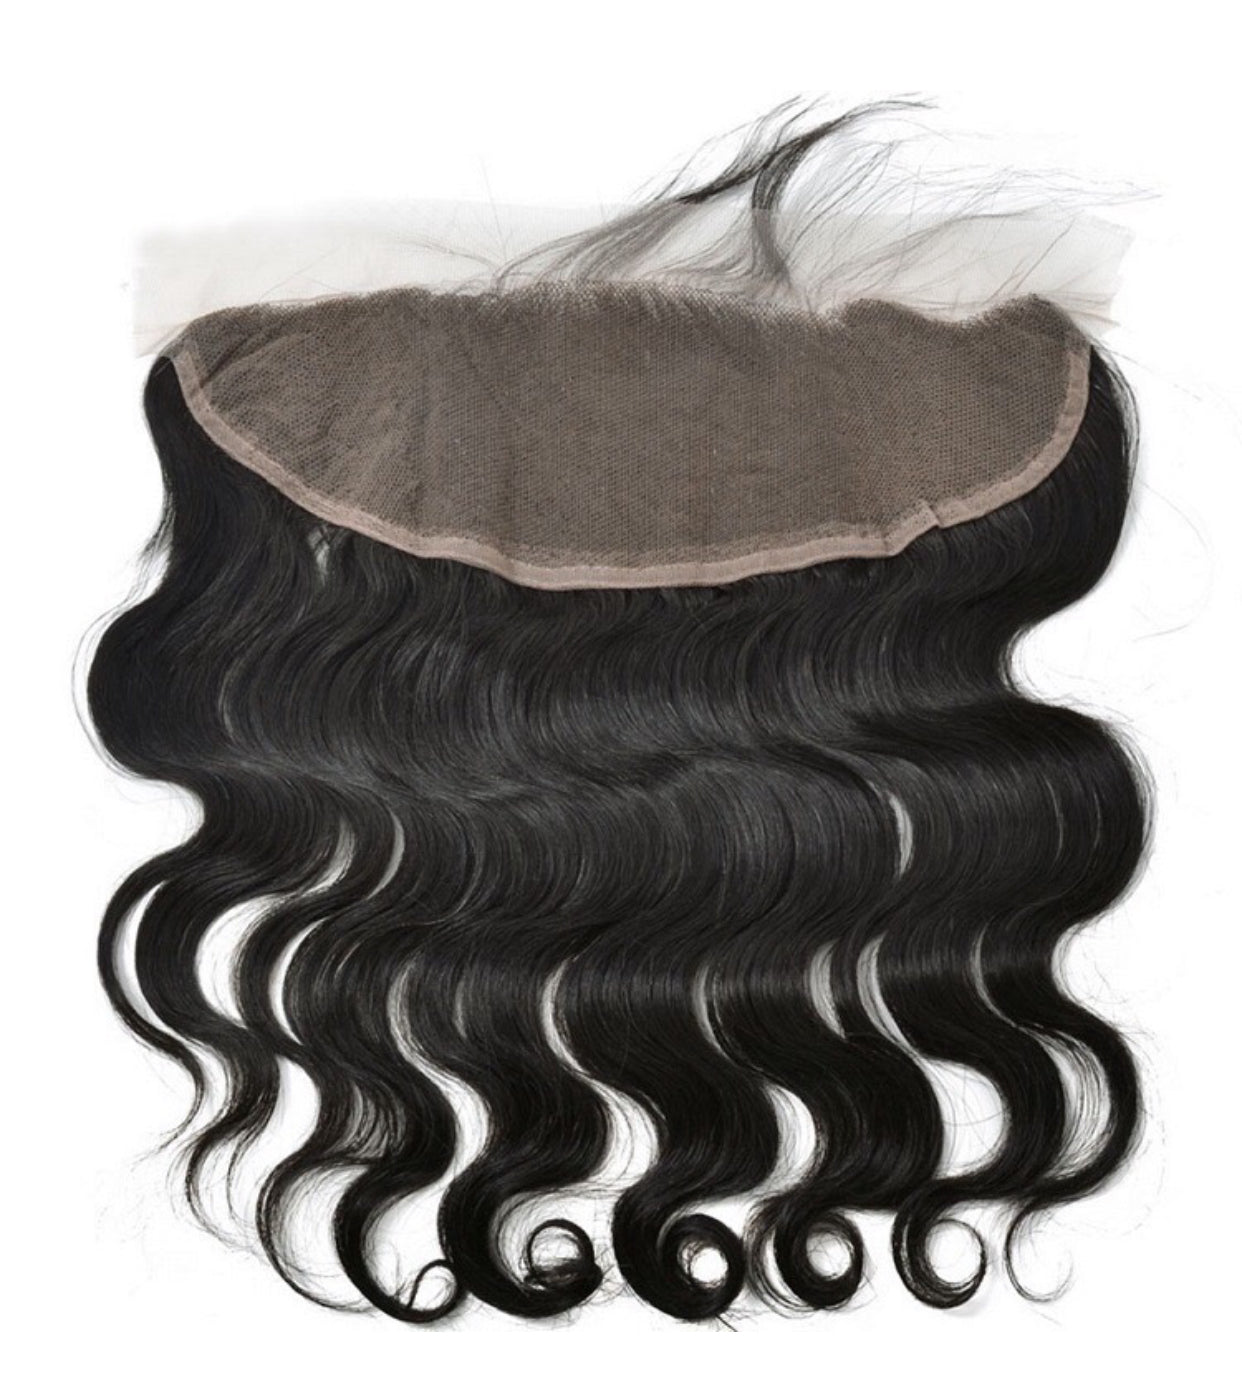 Frontals - Straight & Body Wave